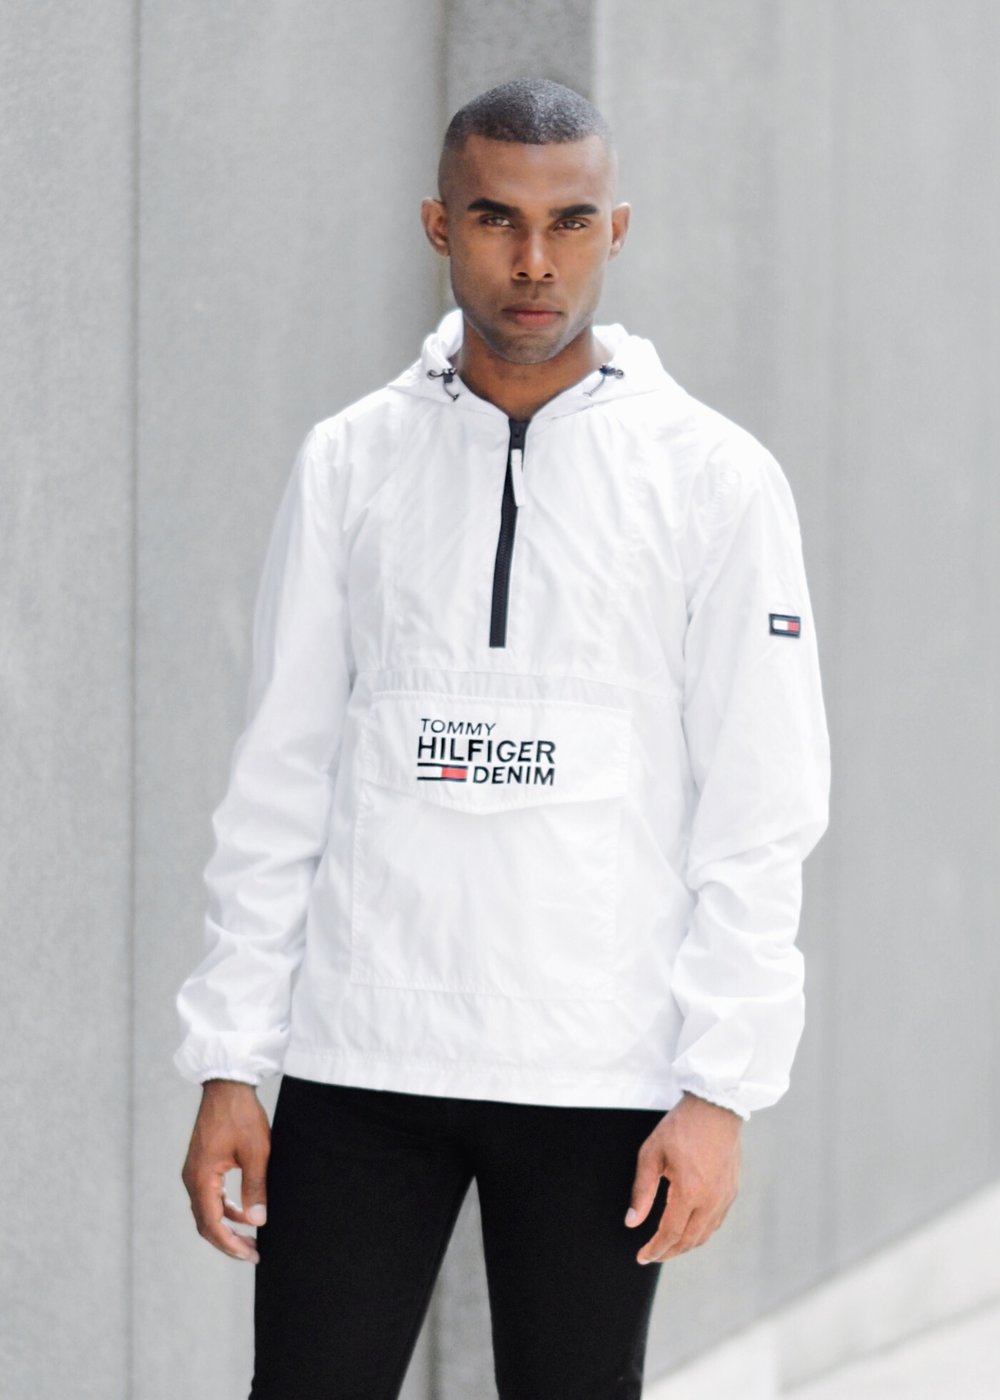 6de86d6ab80 Urban Outfitters  Tommy Hilfiger Collection – Home – The Look Principle